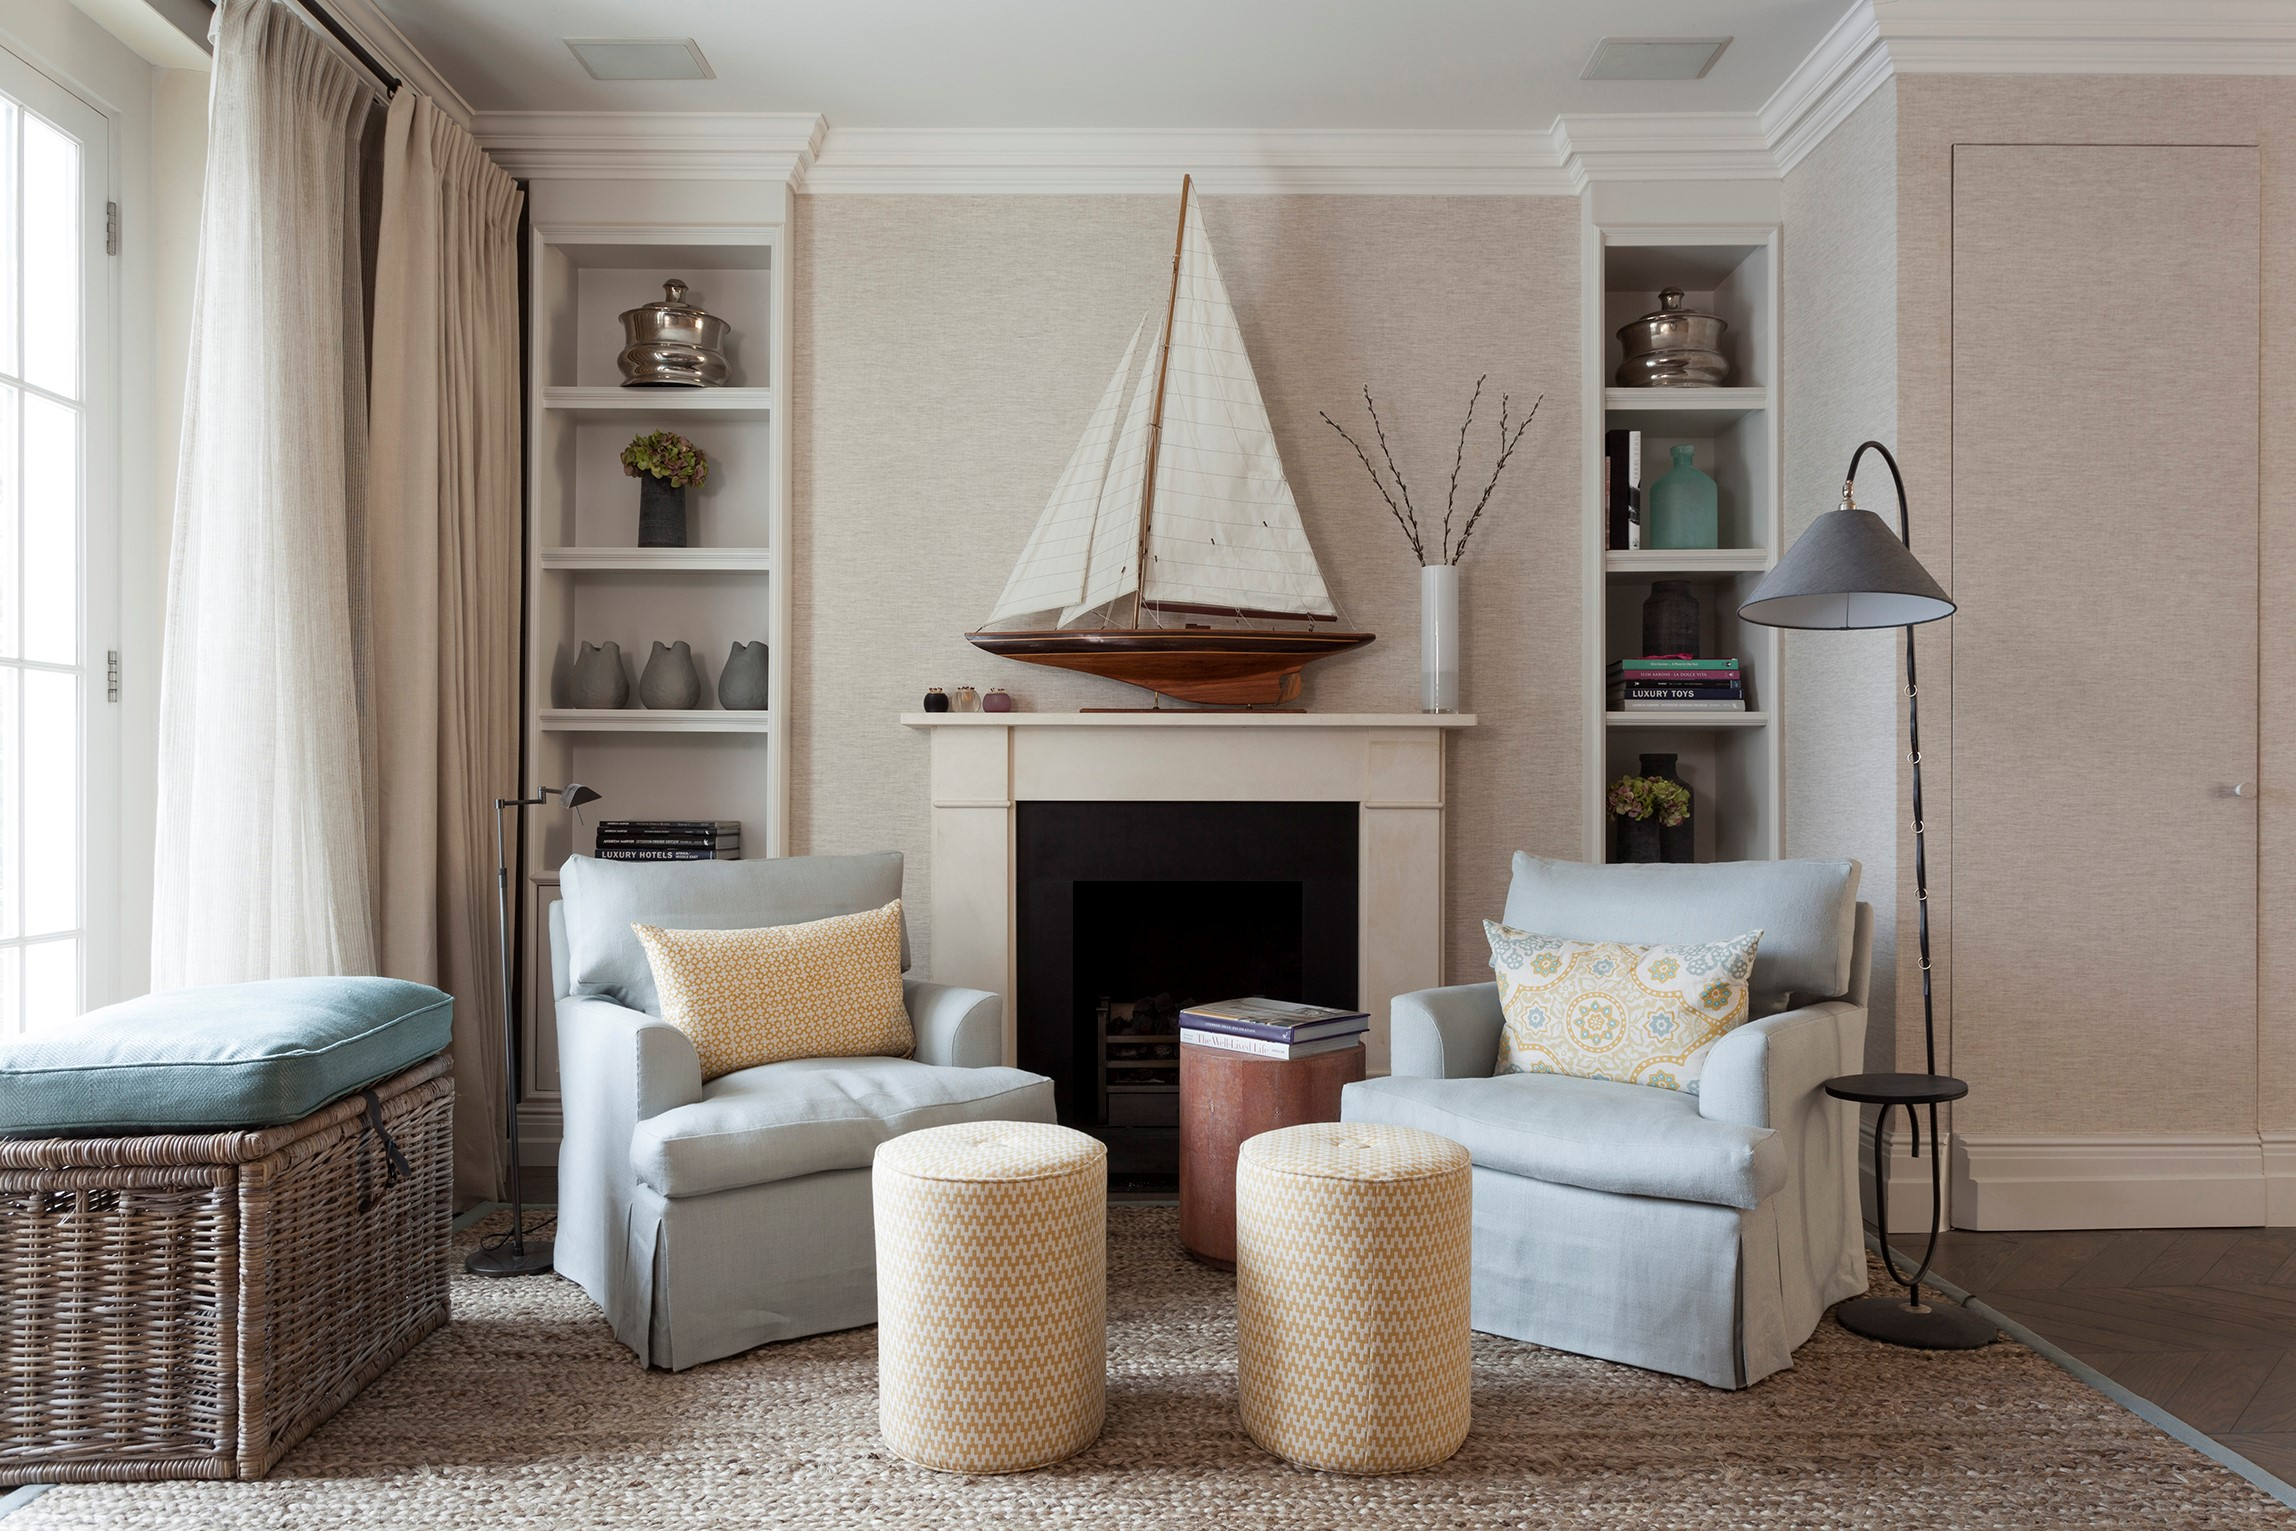 Sophisticated House in Central London with BRABBU´s Armchairs sophisticated houseSophisticated House in Central London with BRABBU´s ArmchairsMelissa and Miller Interiors 3